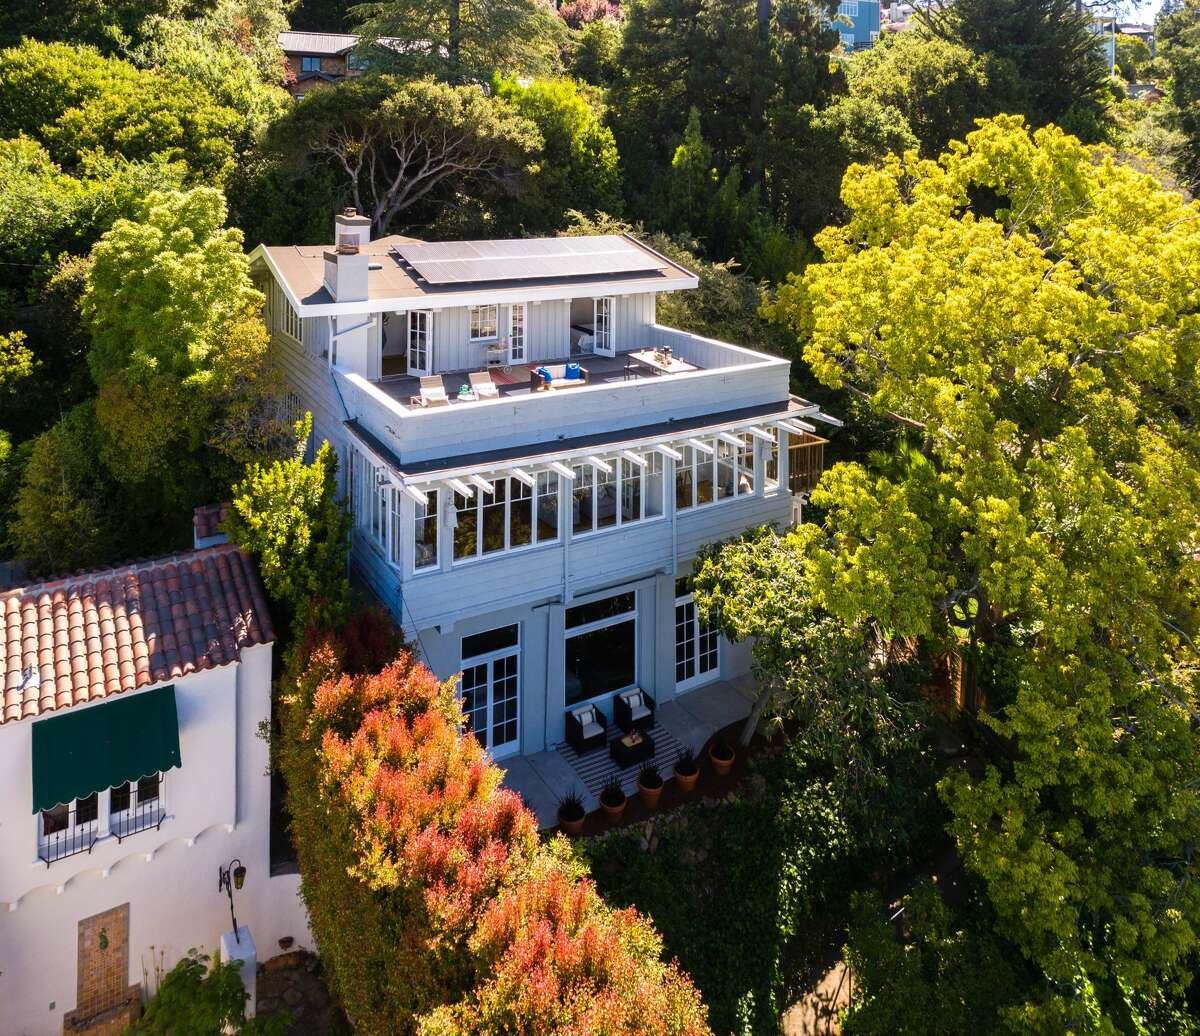 A grand 1916 home at 103 Alvarado in Berkeley has been in the same family for over 50 years and is listed for $1.895 million.